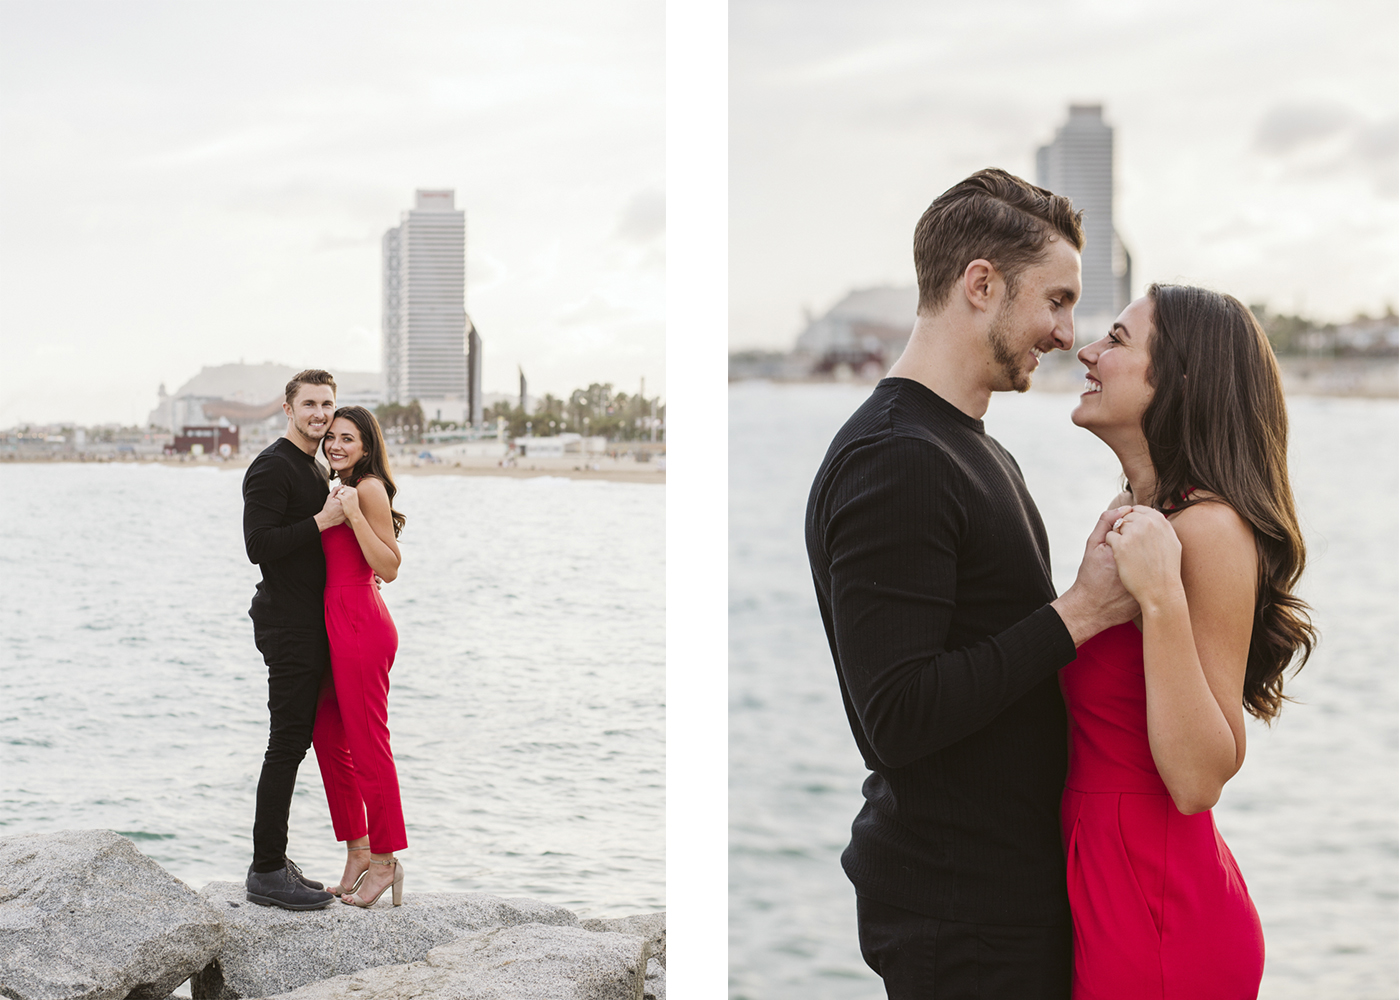 Marriage proposal at the beach in Barcelona | Natalia Photography